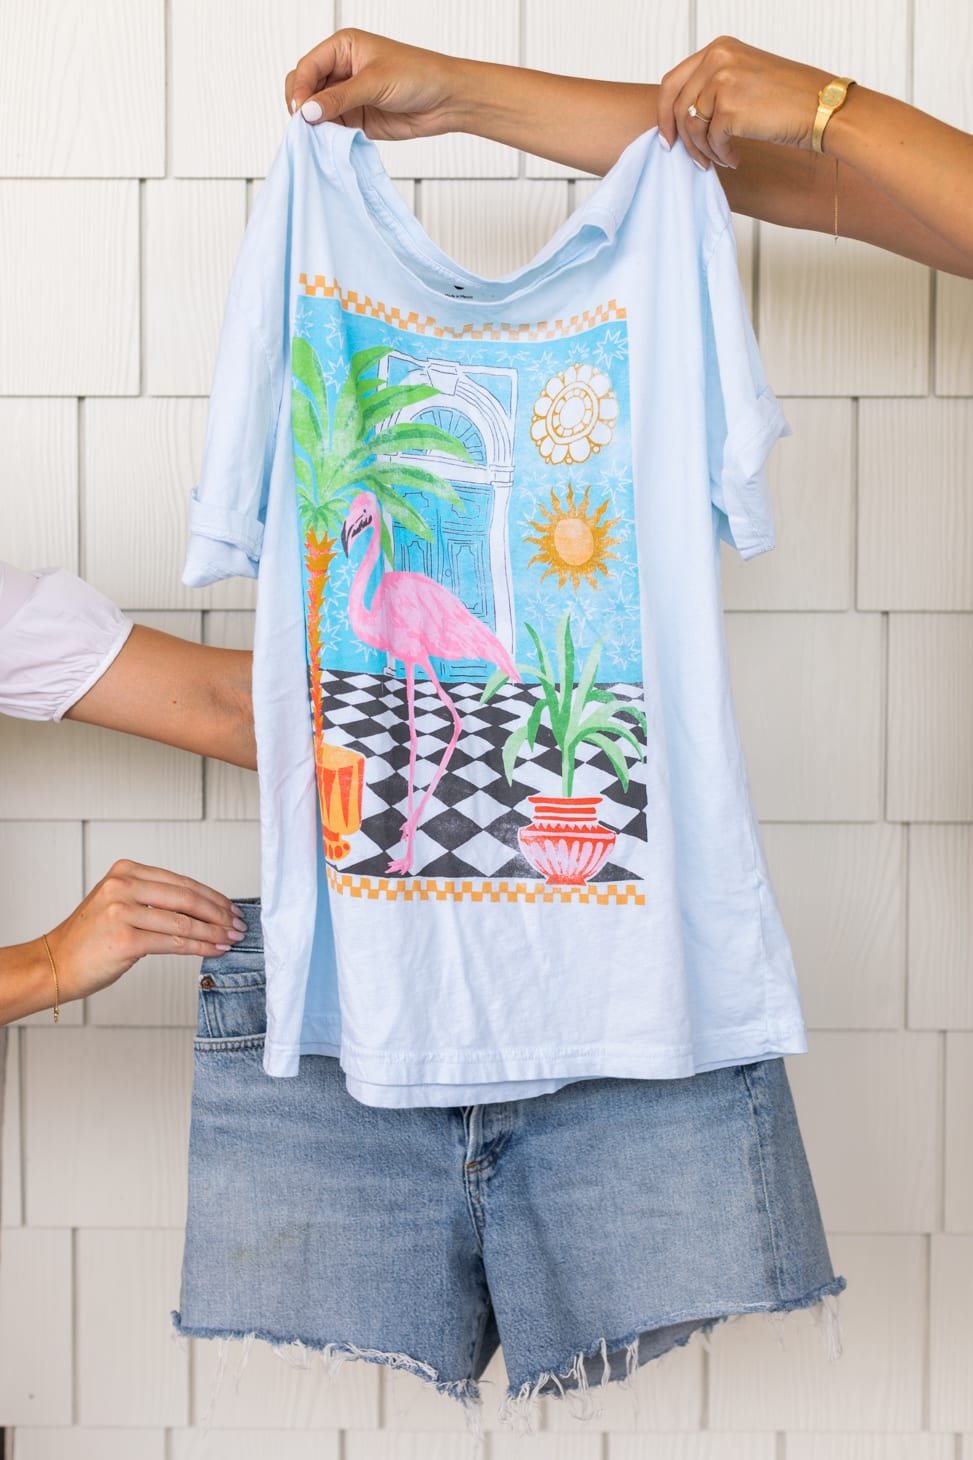 Jillian Harris' Farm-Inspired styled outfit showing a white t-shirt with a flamingo and tropical plants on it paired with distressed cut-off denim shorts.